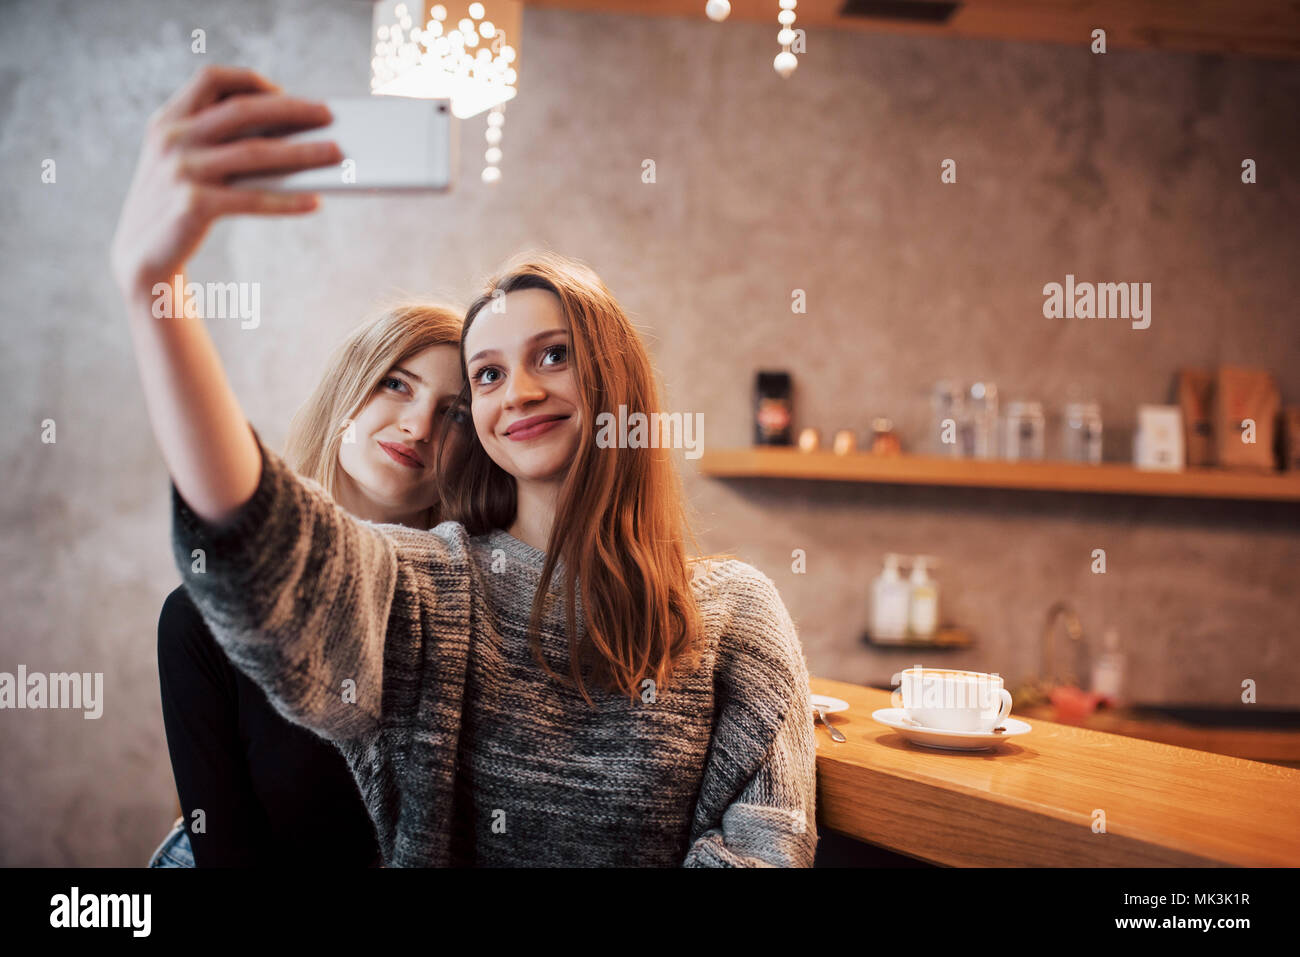 Two friends drinking coffee in a cafe, taking selfies with a smart phone and having fun making funny faces. Focus on the girl on the left - Stock Image